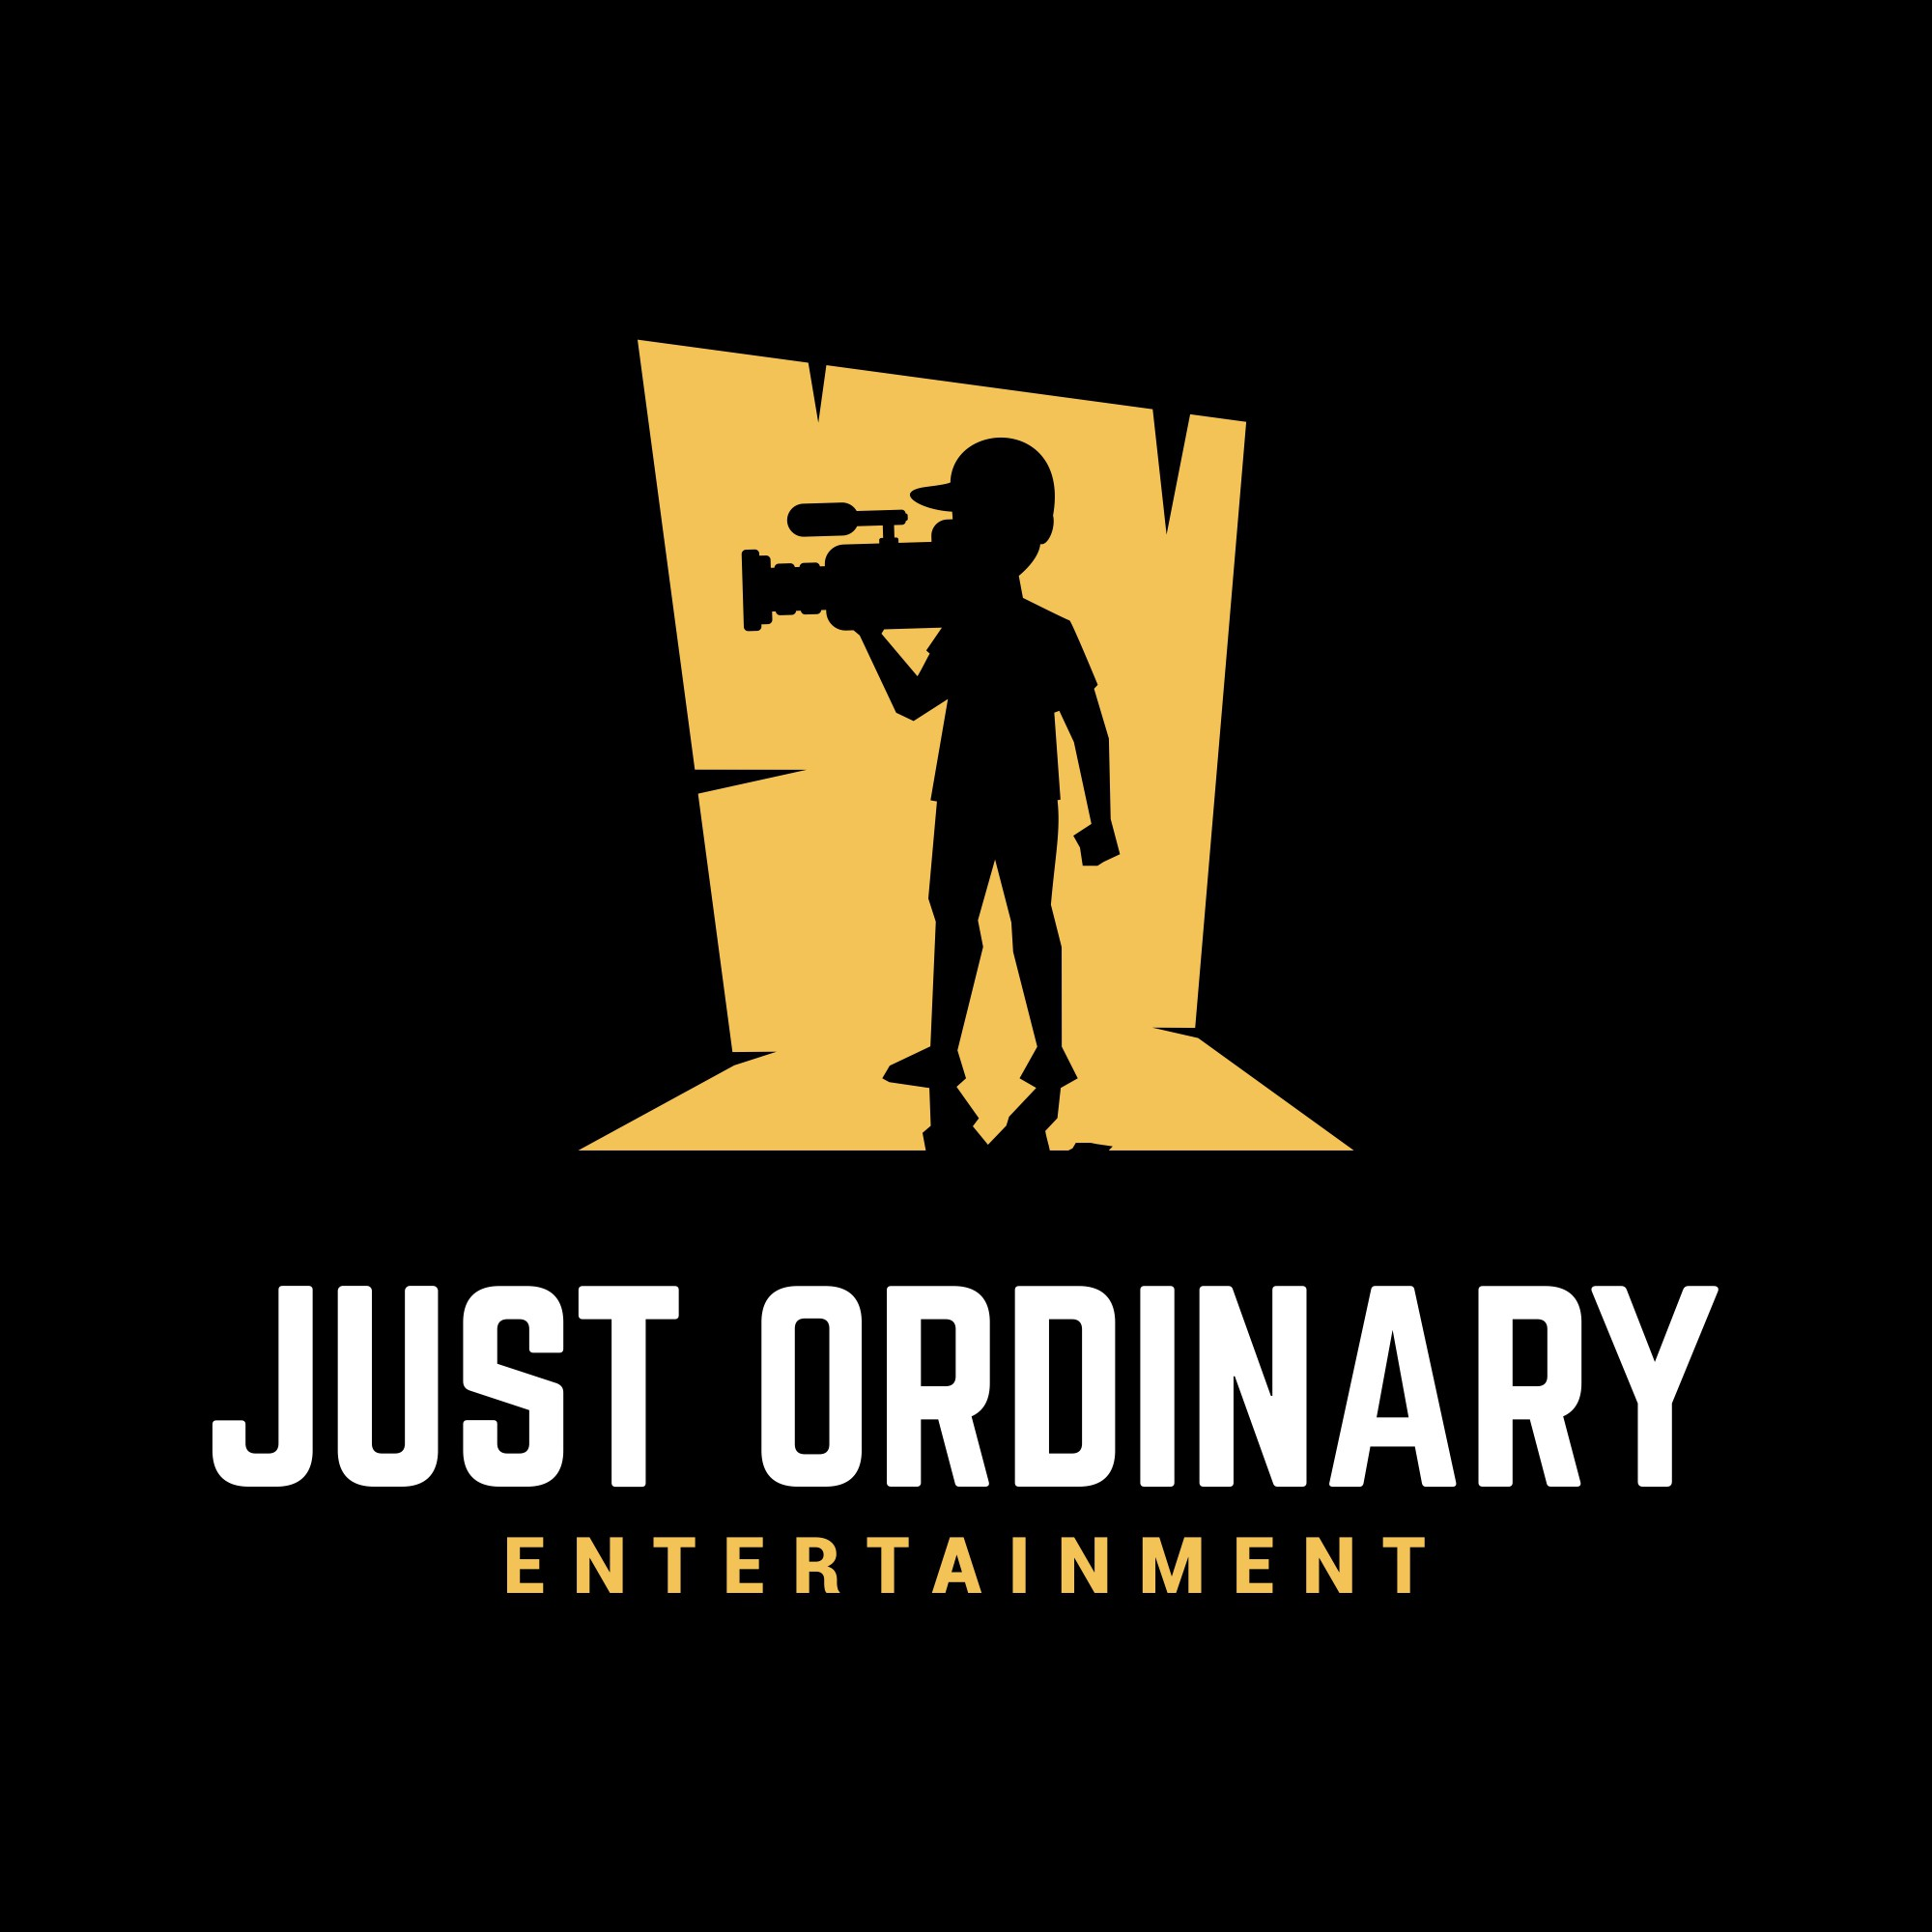 Design creative and powerful logo for our Film production company!